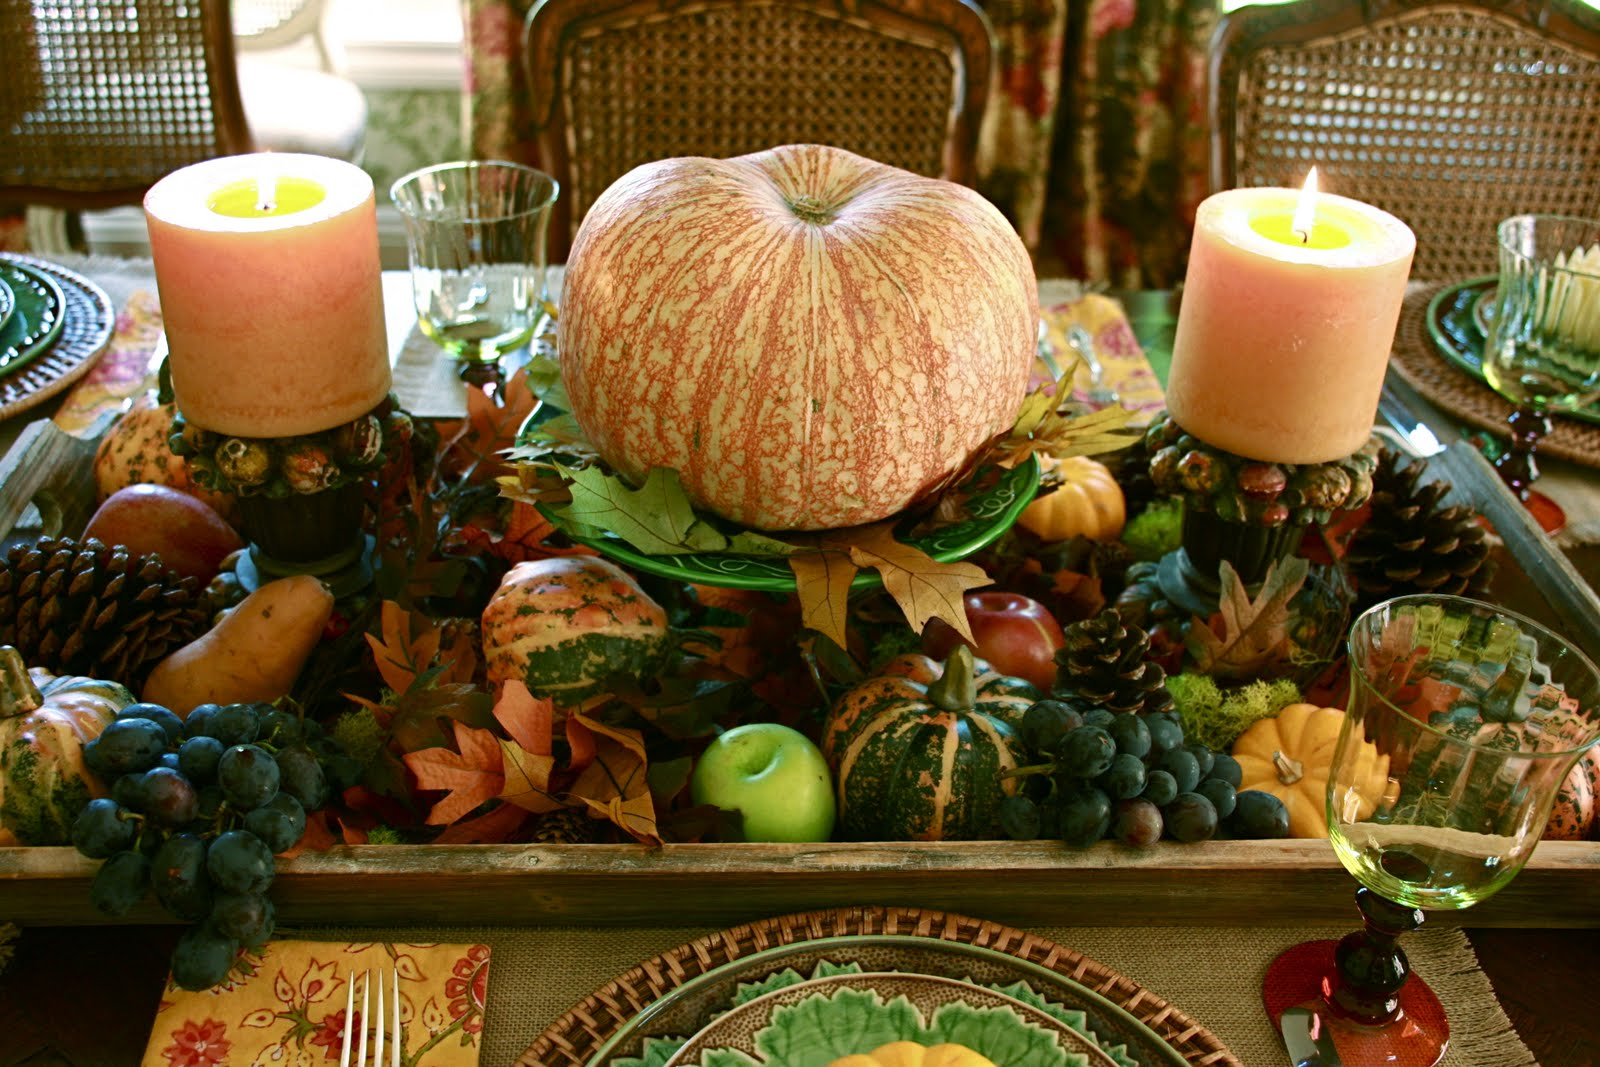 Vignette design an autumn tablescape for Fall table